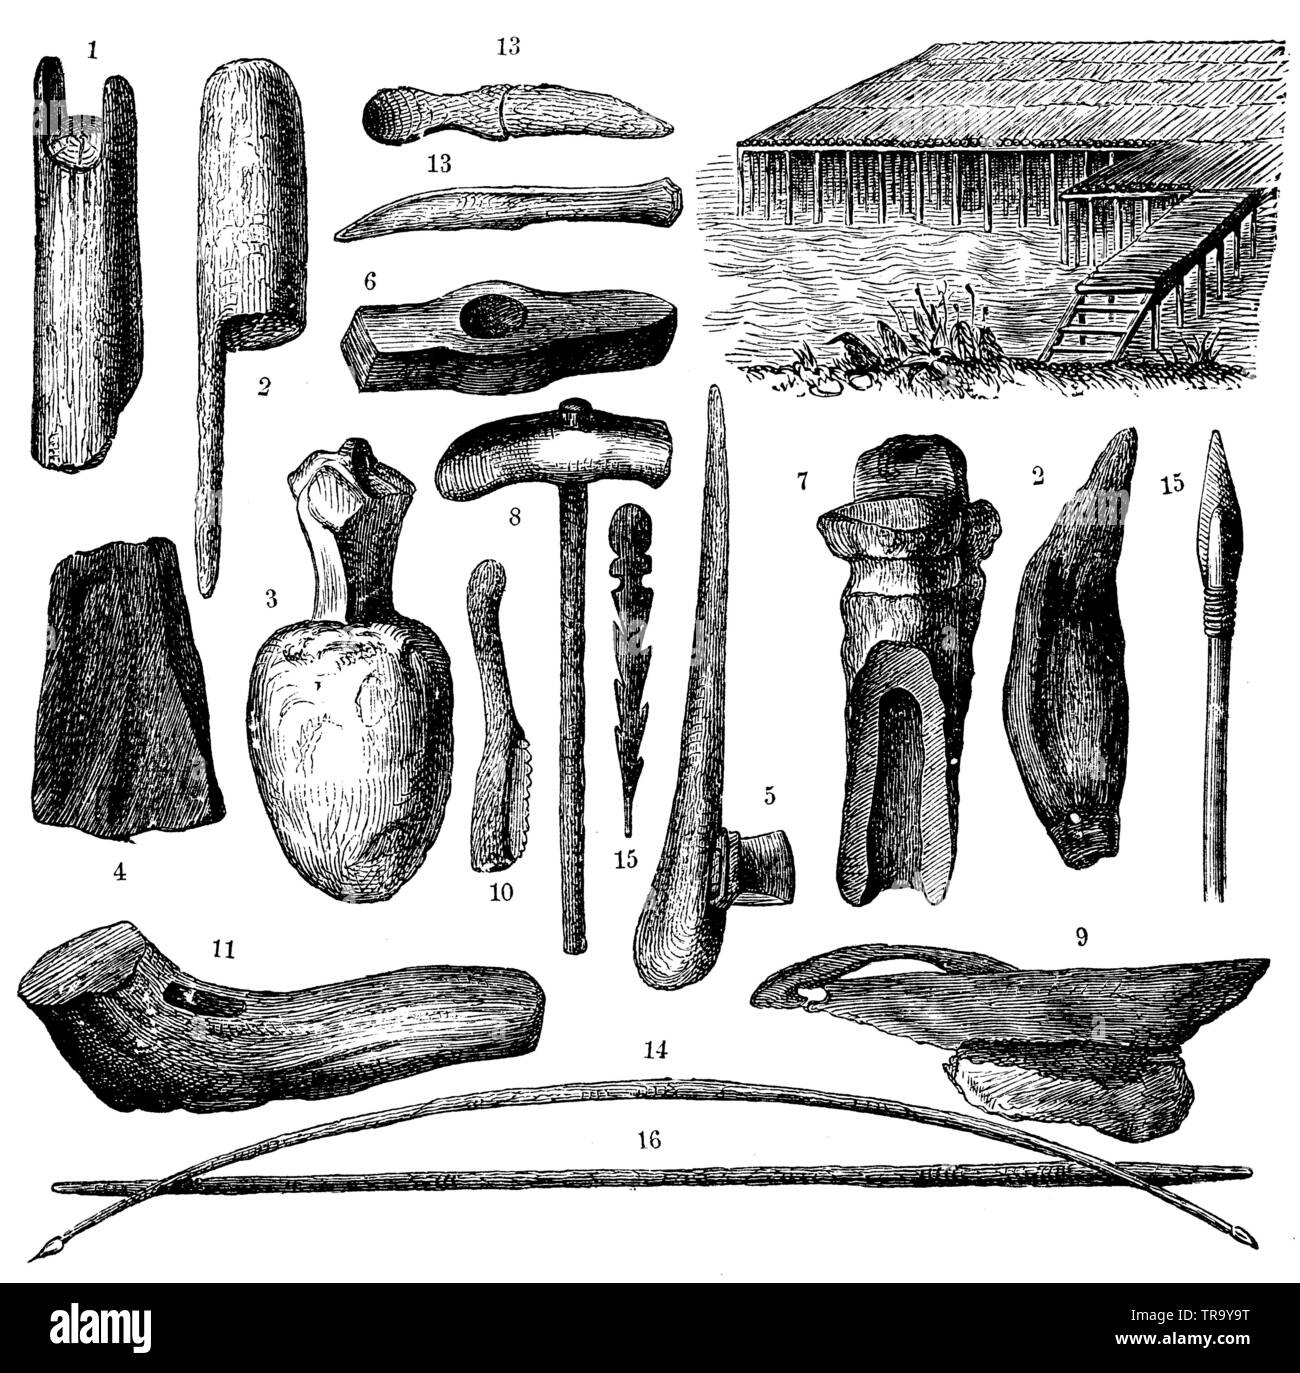 Weapons and tools from the age of pile dwellings. 1) Corner pile head, 2, 3) Wooden mallets for ramming in the piles. 4) Stone wedge. 5) Holmaxt. 6) Stone hammer. 7) Stone axe. 8) Axe hammer. 9) Stone saw. 10) Flint saw. 11) Deer horn hammer. 12) Bear tooth (puncturing tool). 13) Two yew wood knives. 14) Hunting bow and war bow made of yew wood. 15) Spearheads. 16) Throwing spear, ,  (anthropology book, 1874) Stock Photo